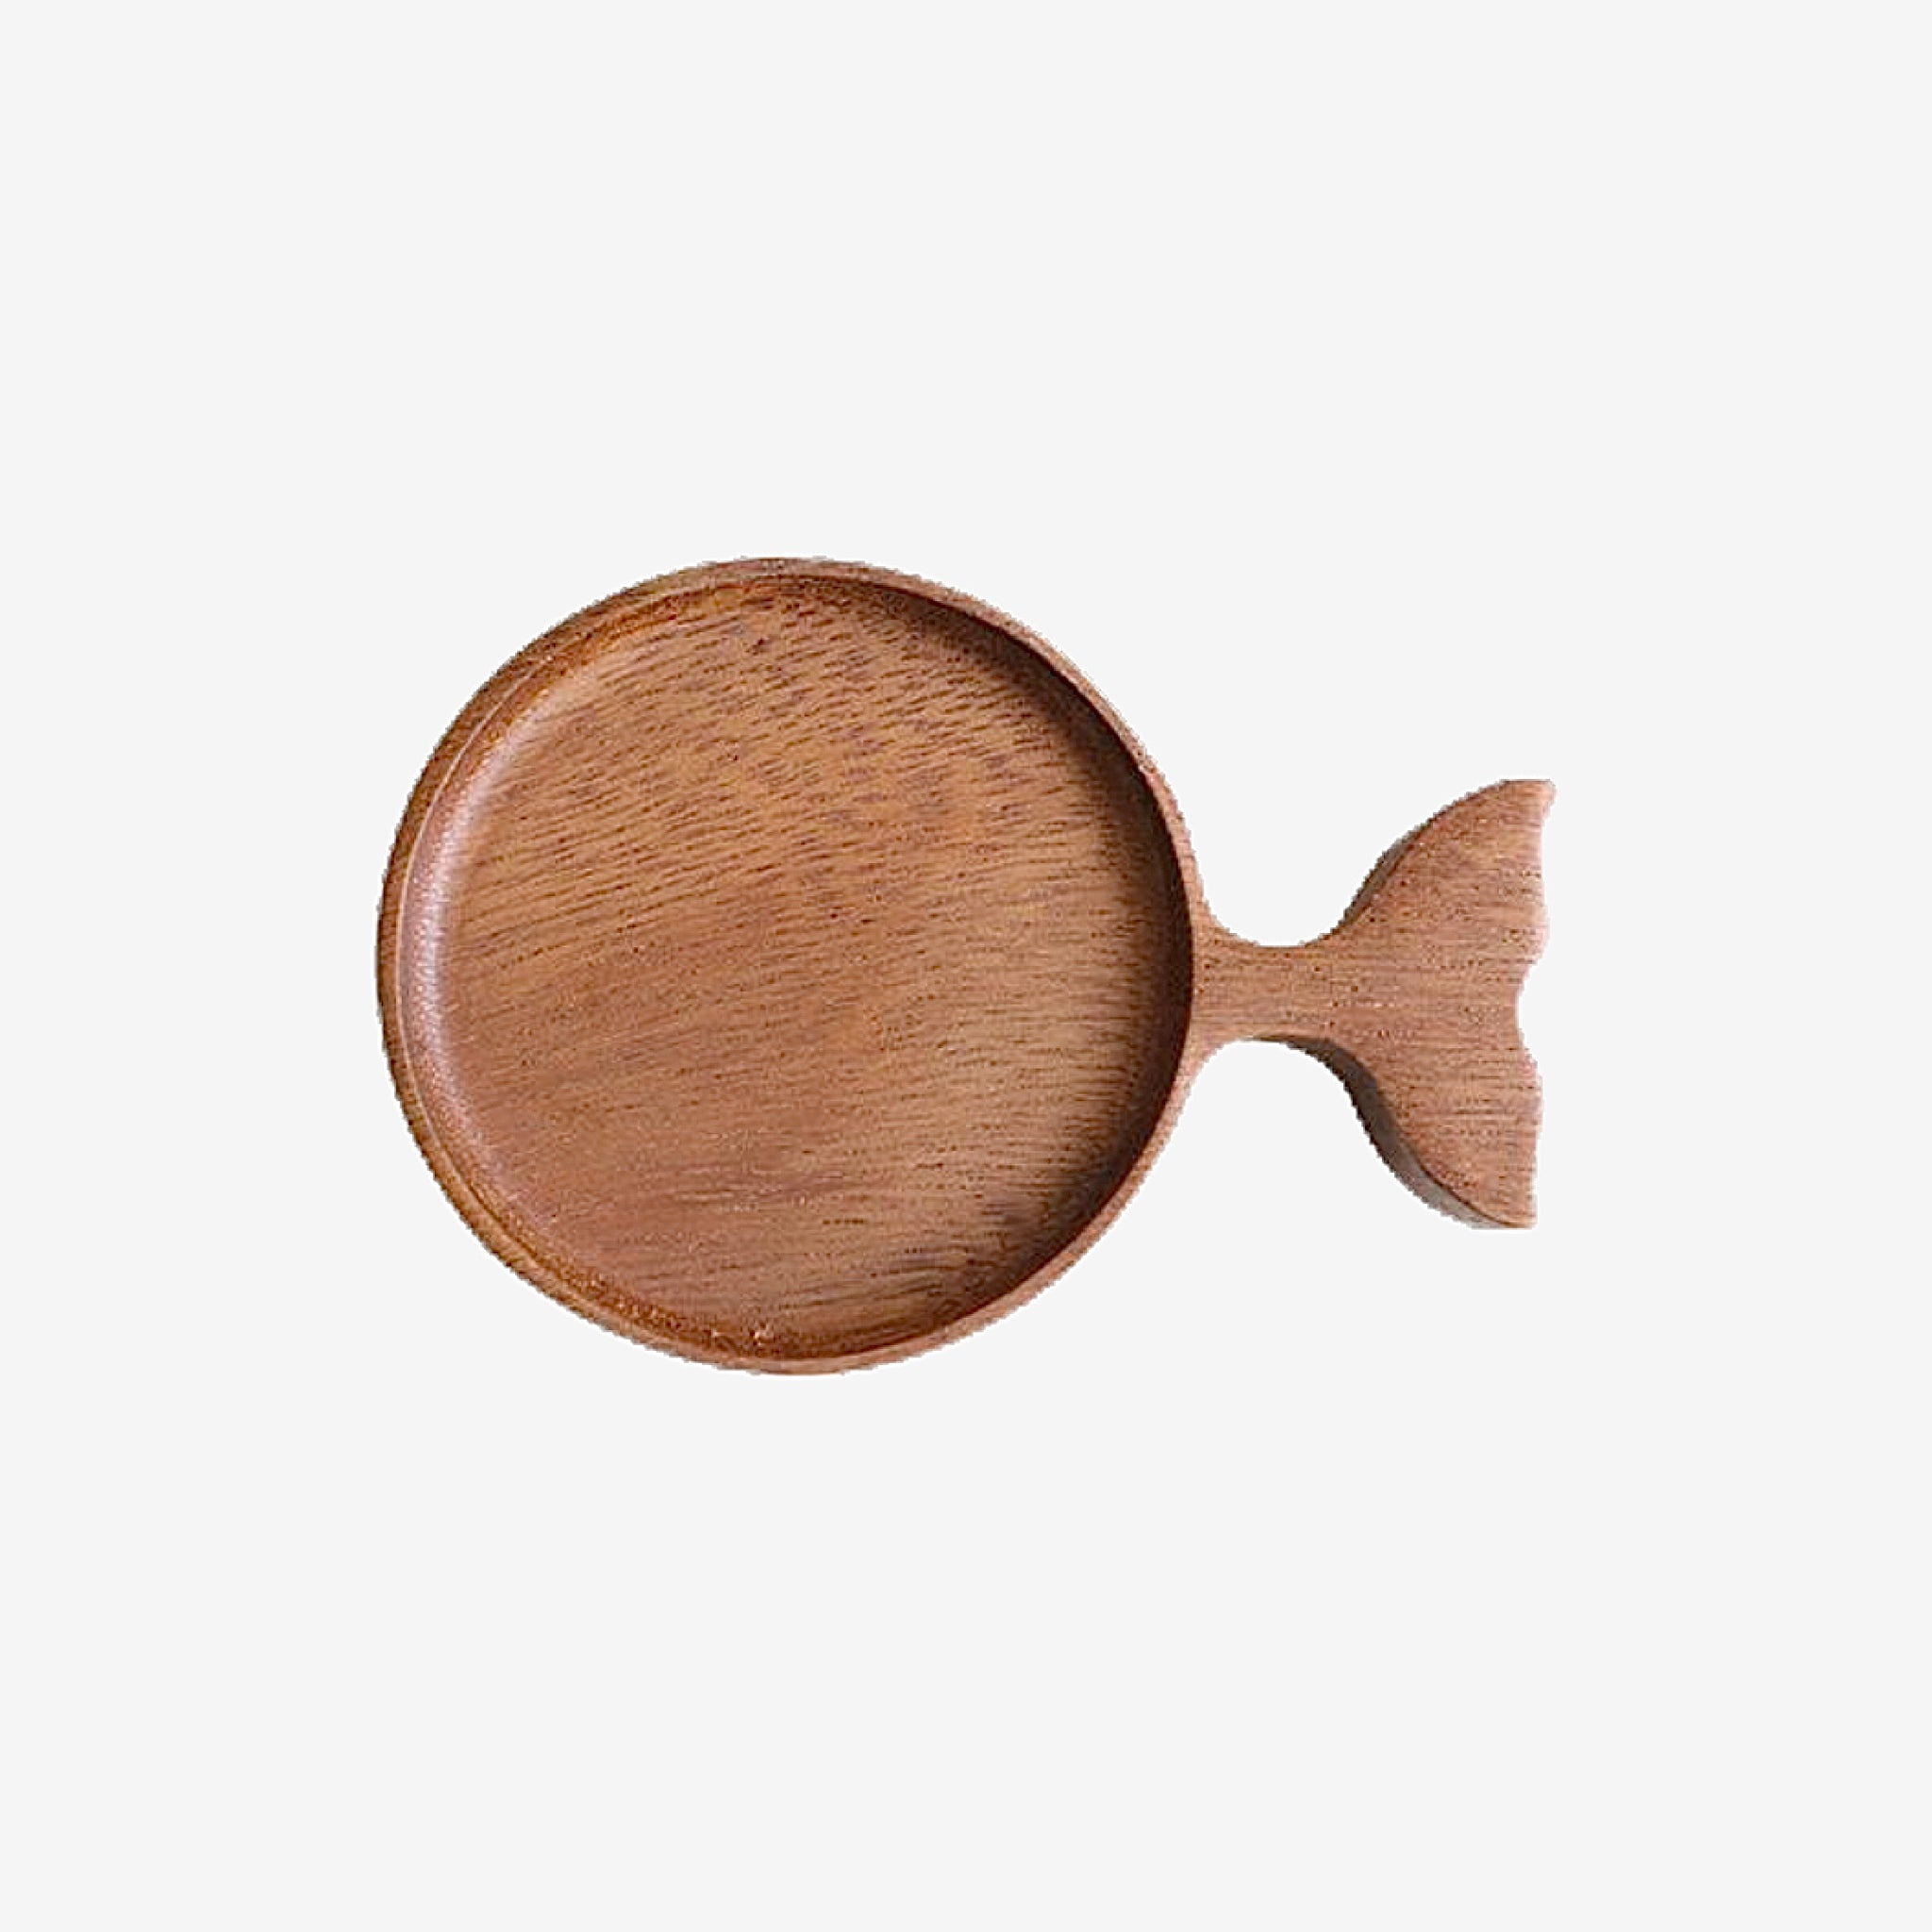 Japanese Acacia Wood Serving Dish Round Wooden Fish shape Plate Creative Retro Hand-painted Japan Tableware Dipping Sauce Dishes Trend